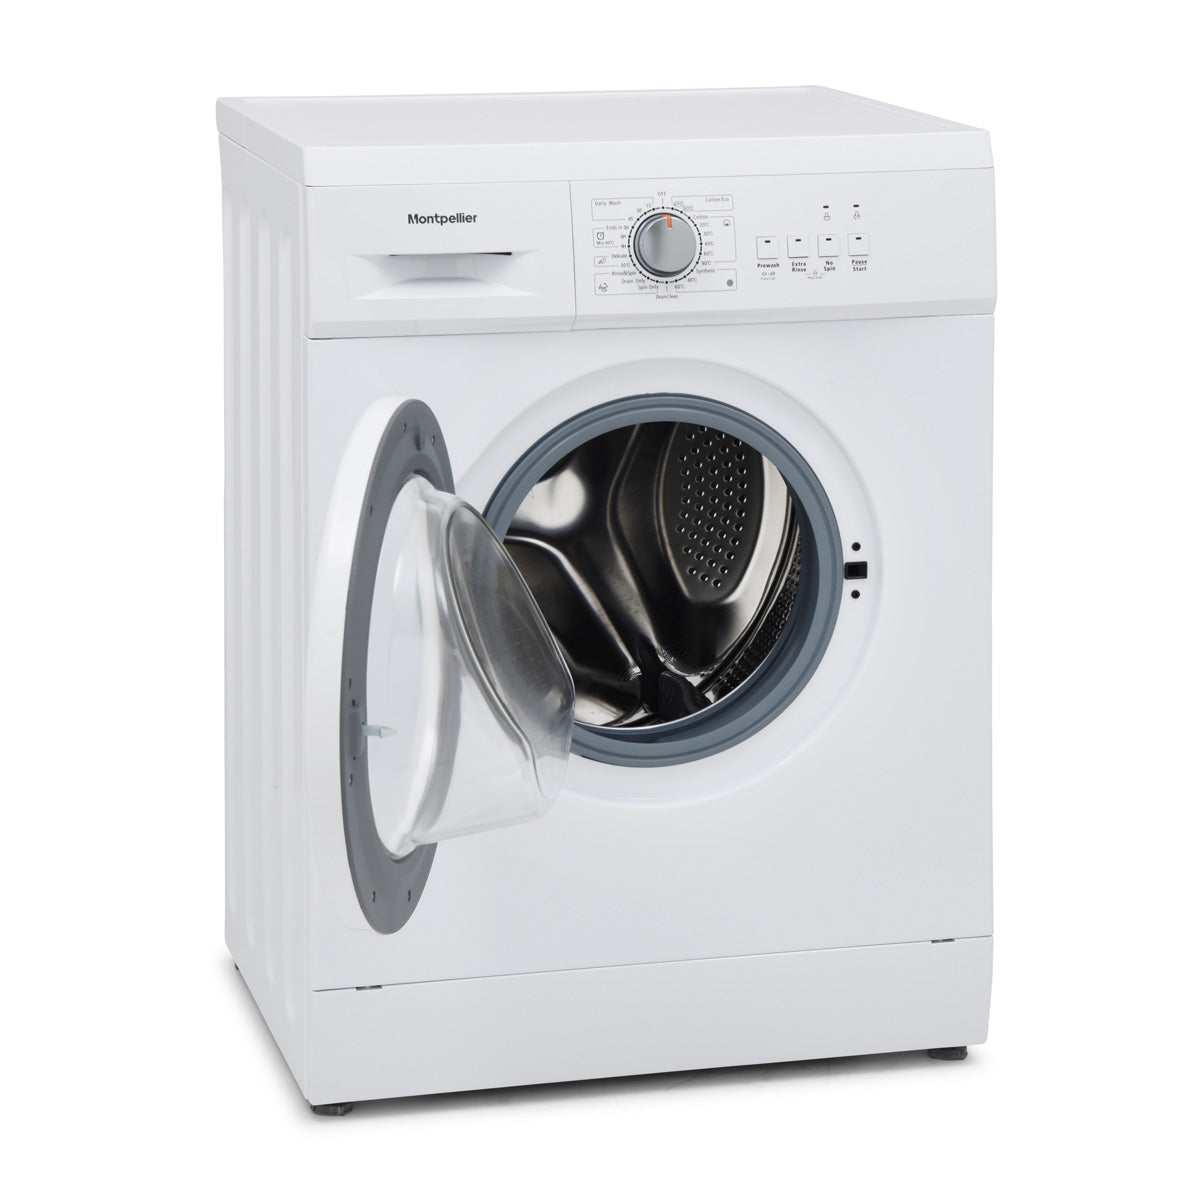 Montpellier MW6101W 6Kg Freestanding Washing Machine